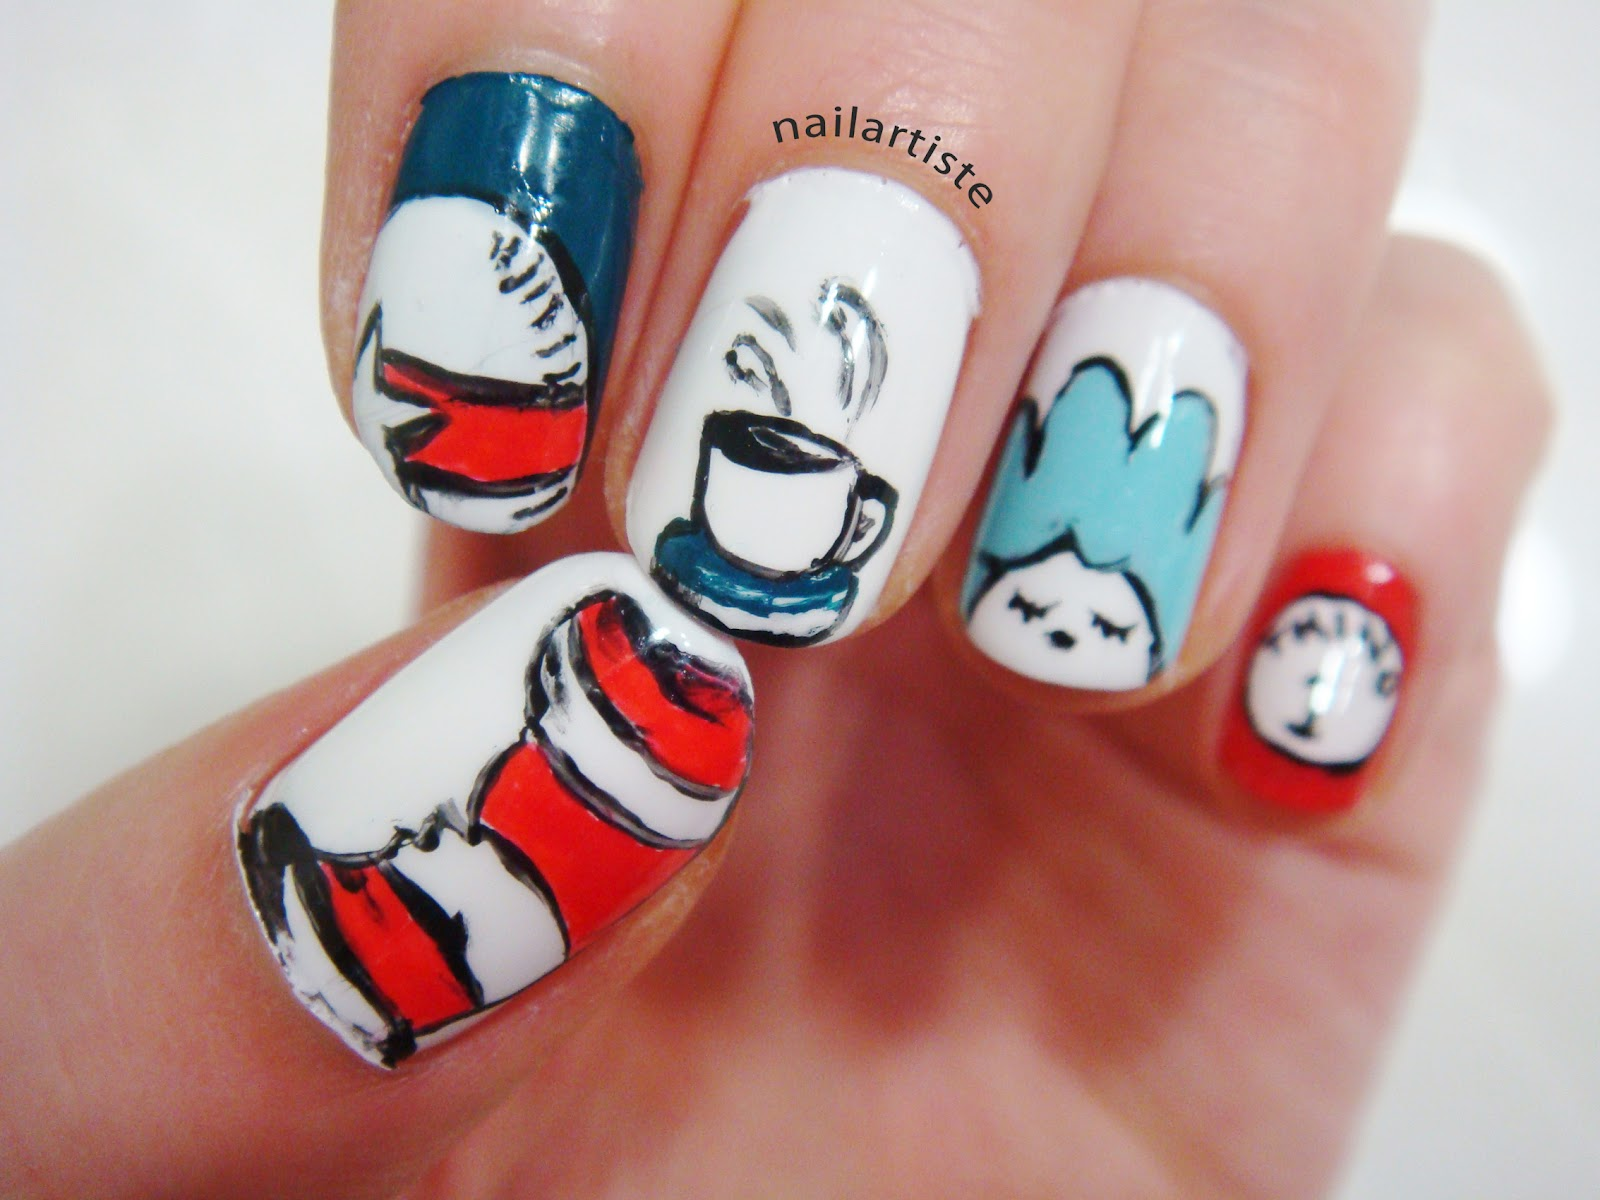 The Nail Artiste Nail Art The Cat In The Hat For Makeup Savvy Nail